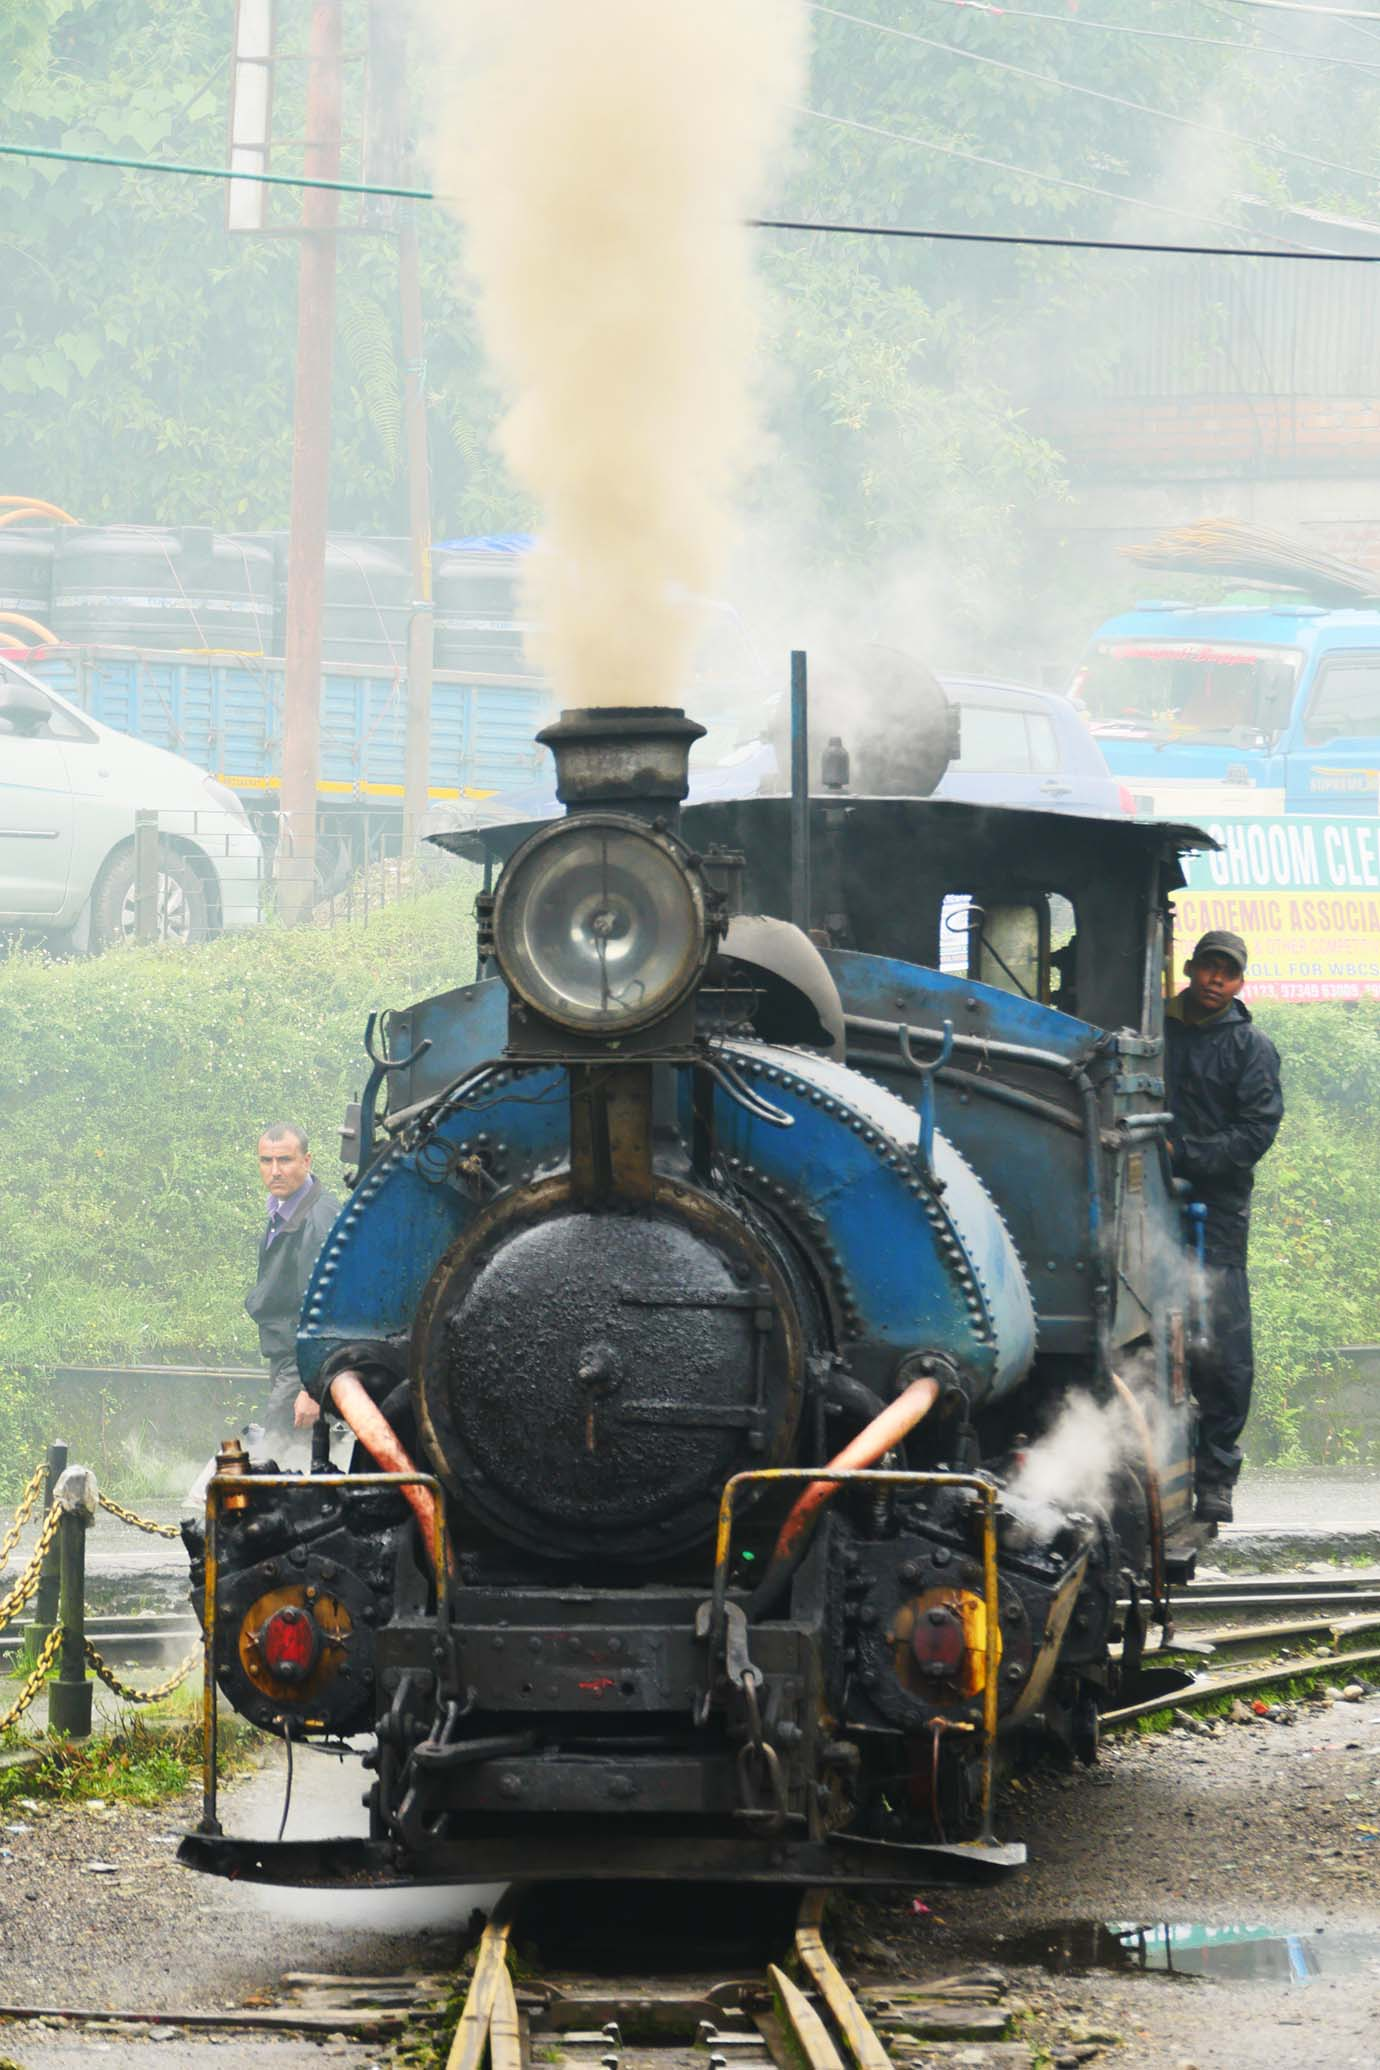 ride-darjeeling-railway-india54